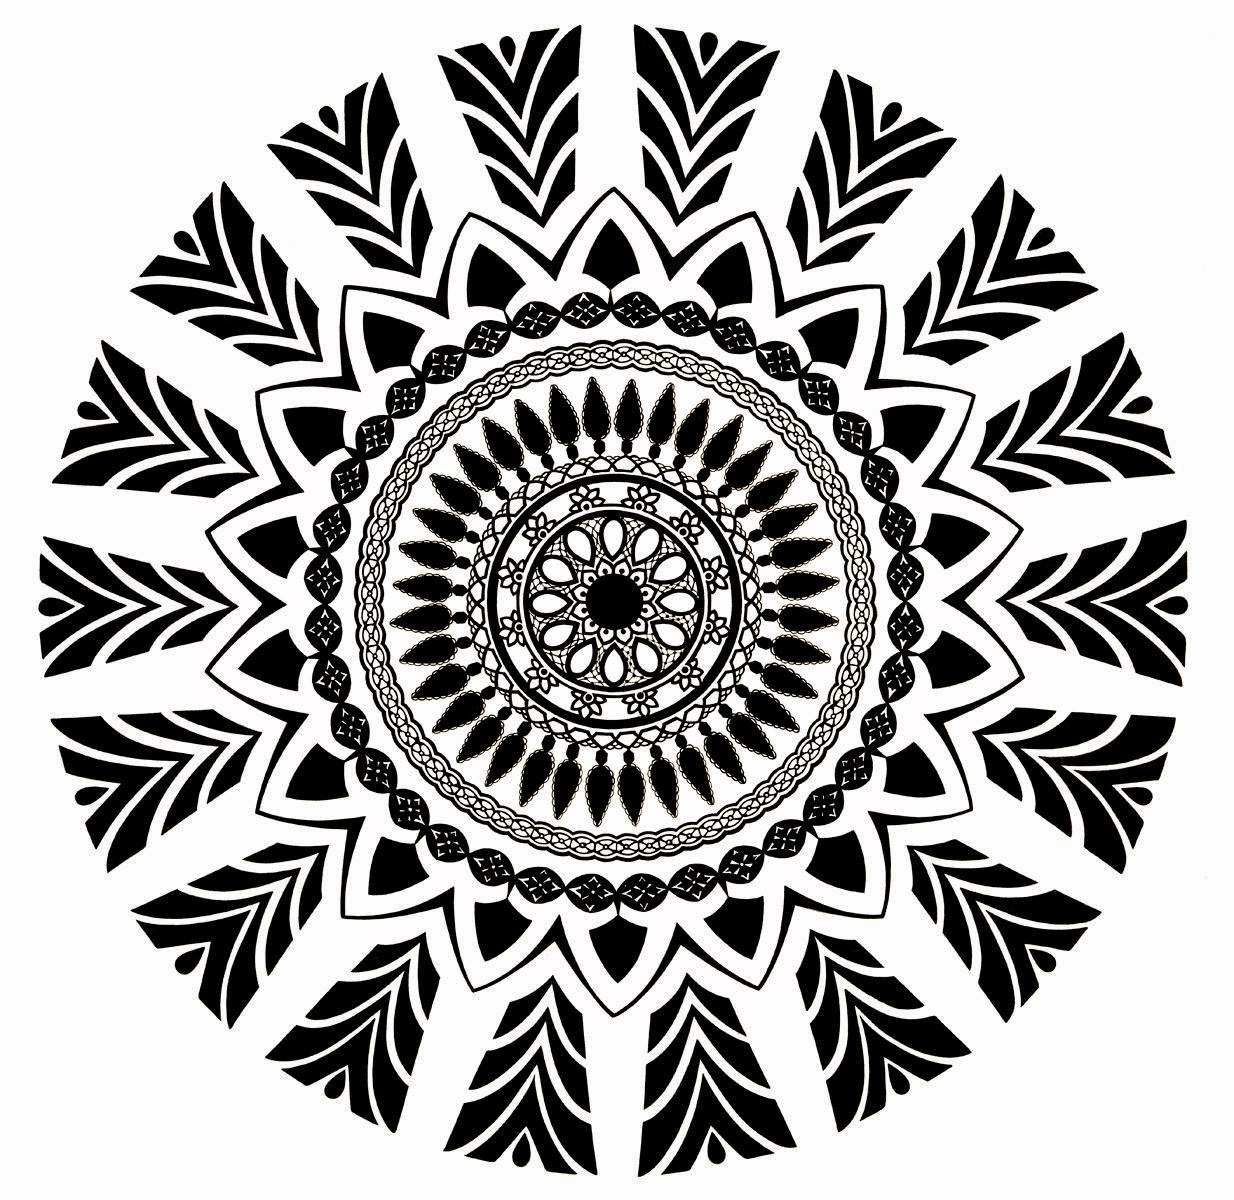 zentangle, zendoodle, zendala, mandala